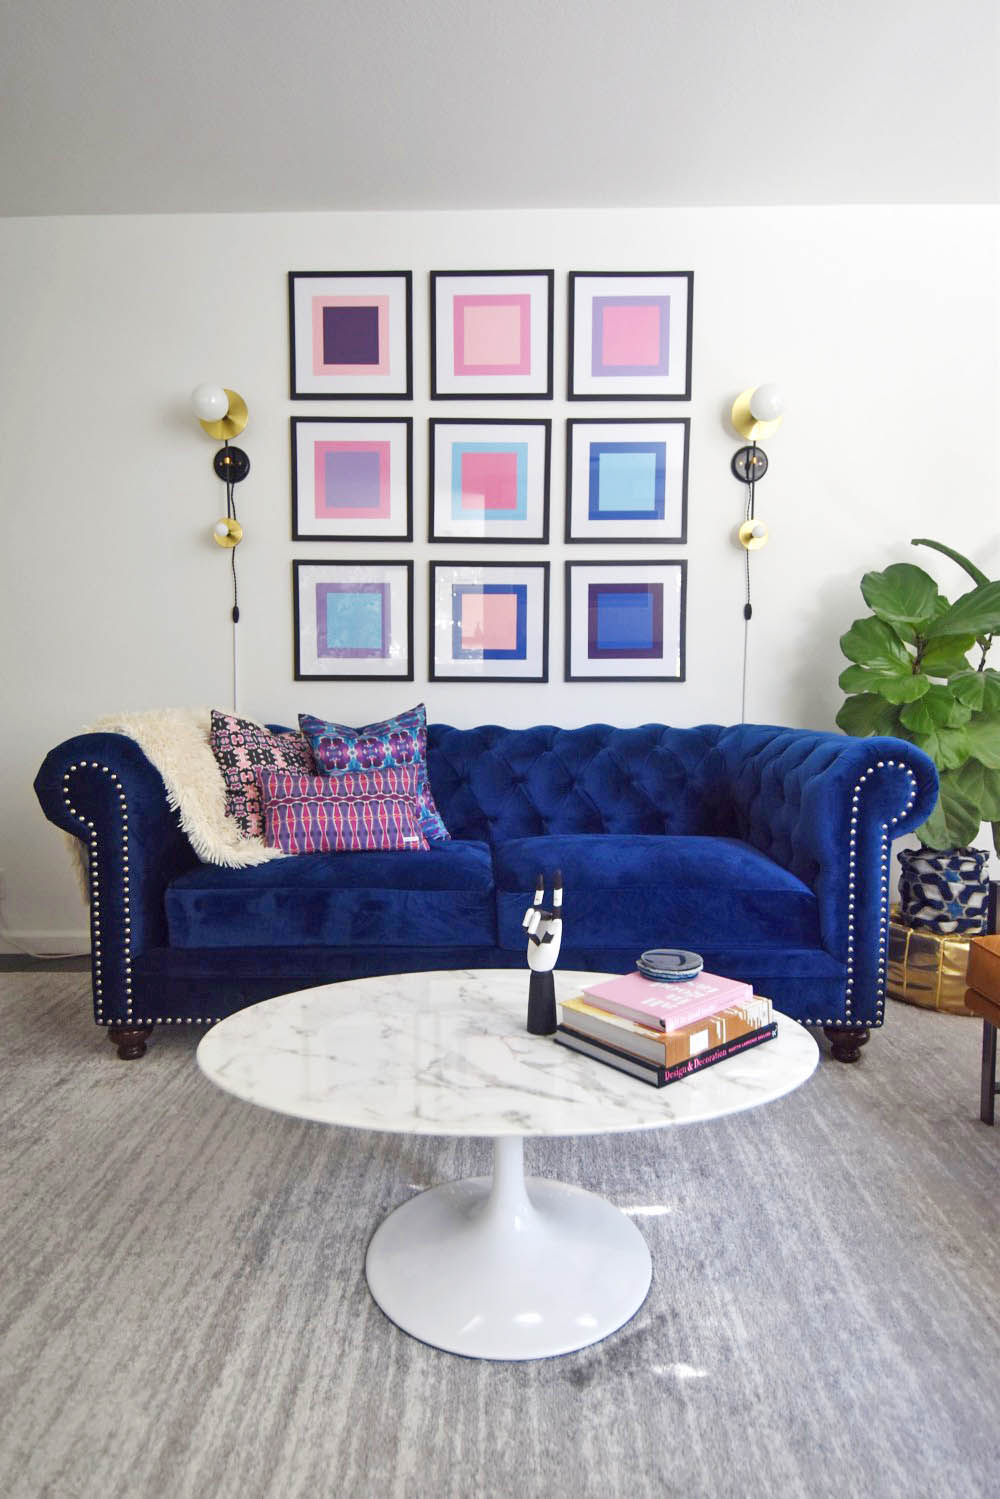 Sofa Cord Stefanie's Home: Midcentury Glam Living Room Reveal